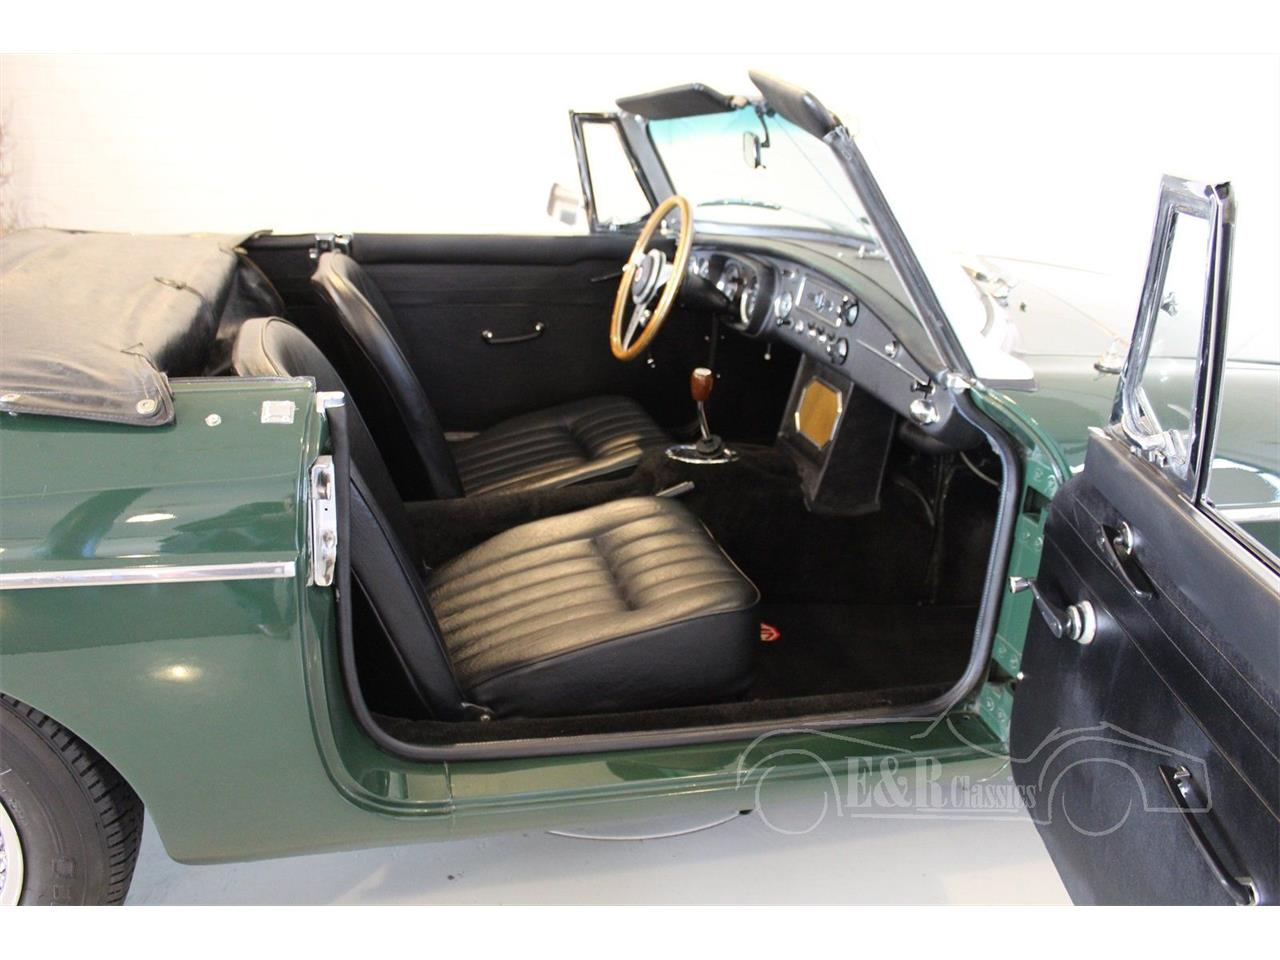 Large Picture of '64 MG MGB located in Waalwijk noord brabant - $27,950.00 - Q178